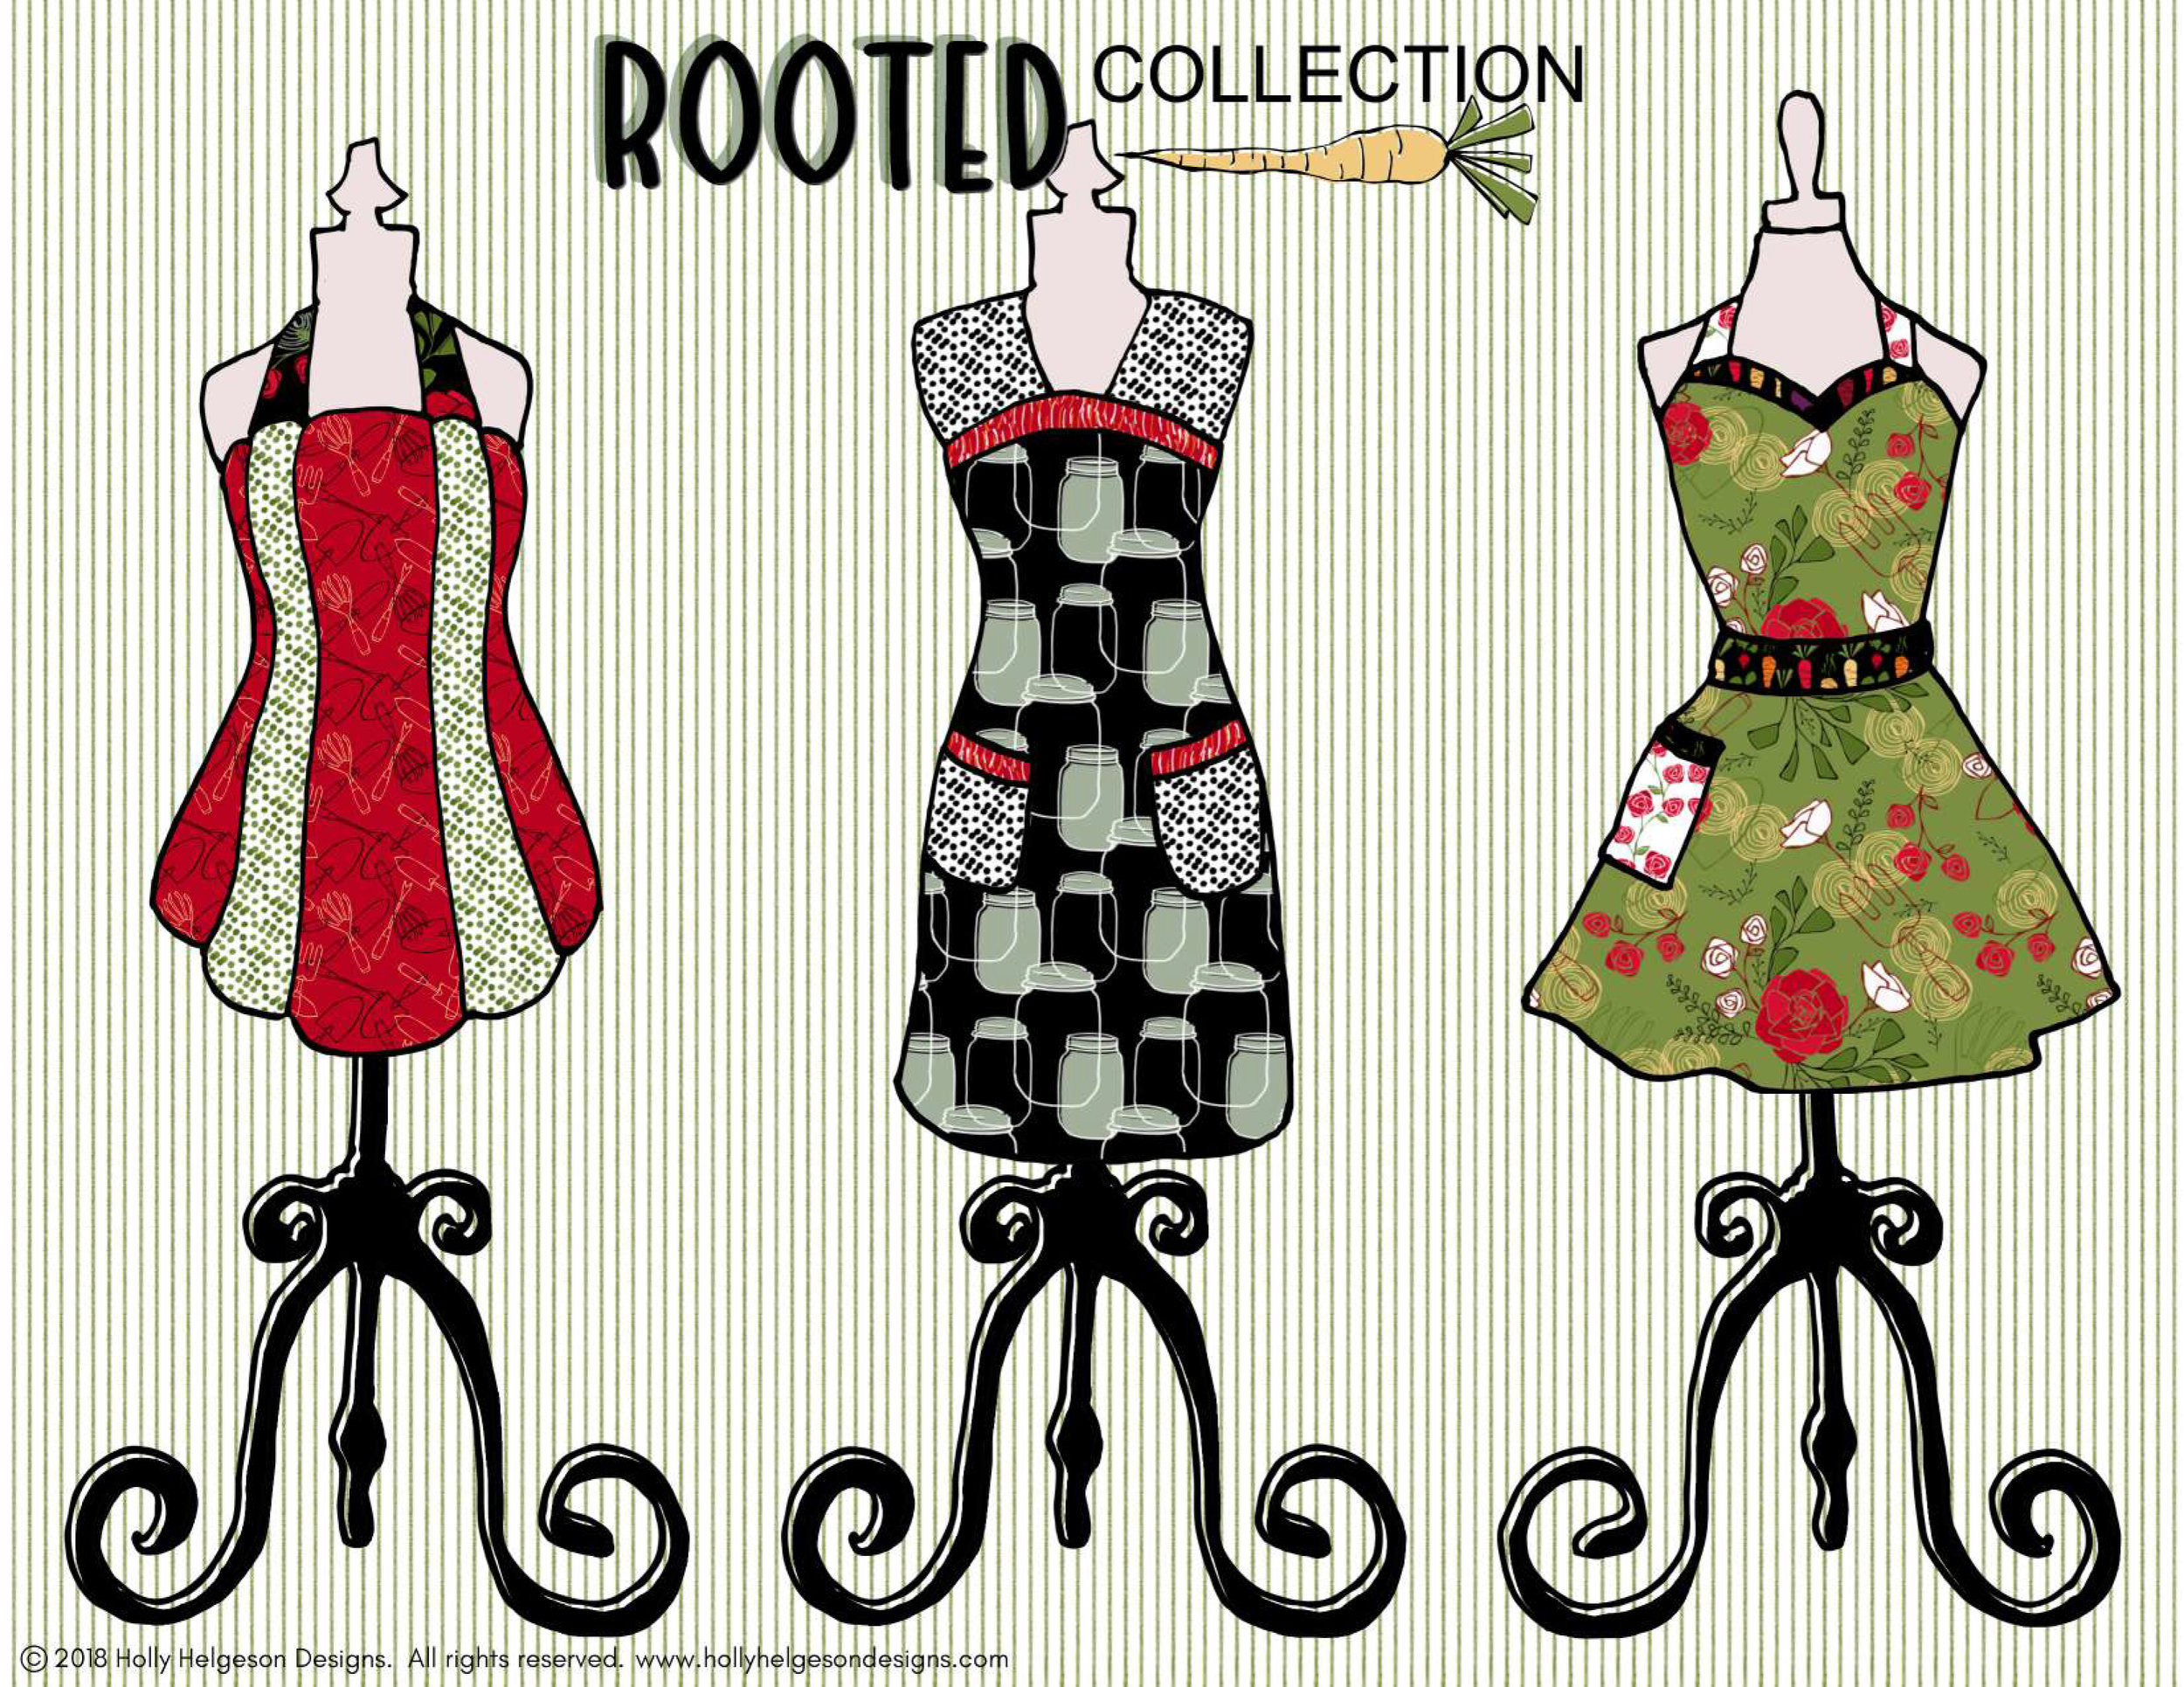 2018 Rooted Collection by Holly Helgeson-8.jpg